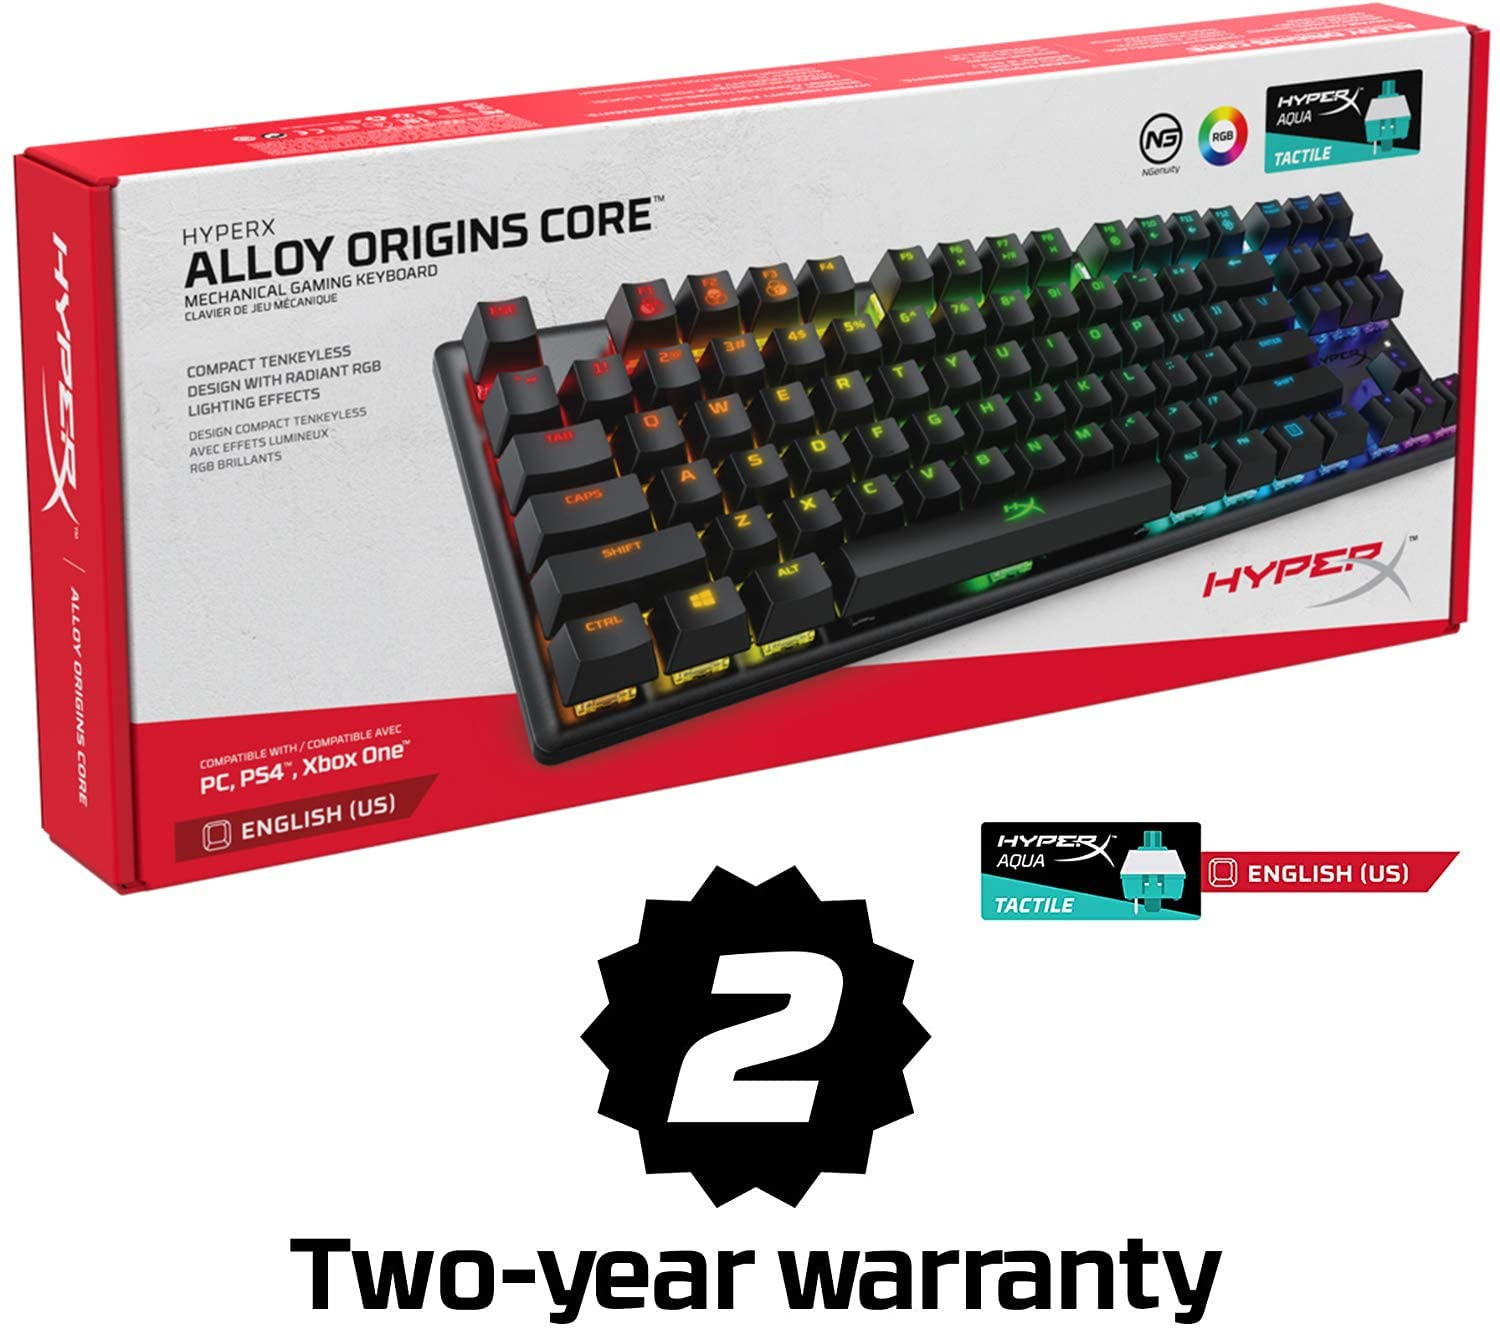 Clicky HyperX Blue Switch HyperX Alloy Origins Full Size Mechanical Gaming Keyboard Compact Form Factor RGB LED Backlit Software-Controlled Light /& Macro Customization